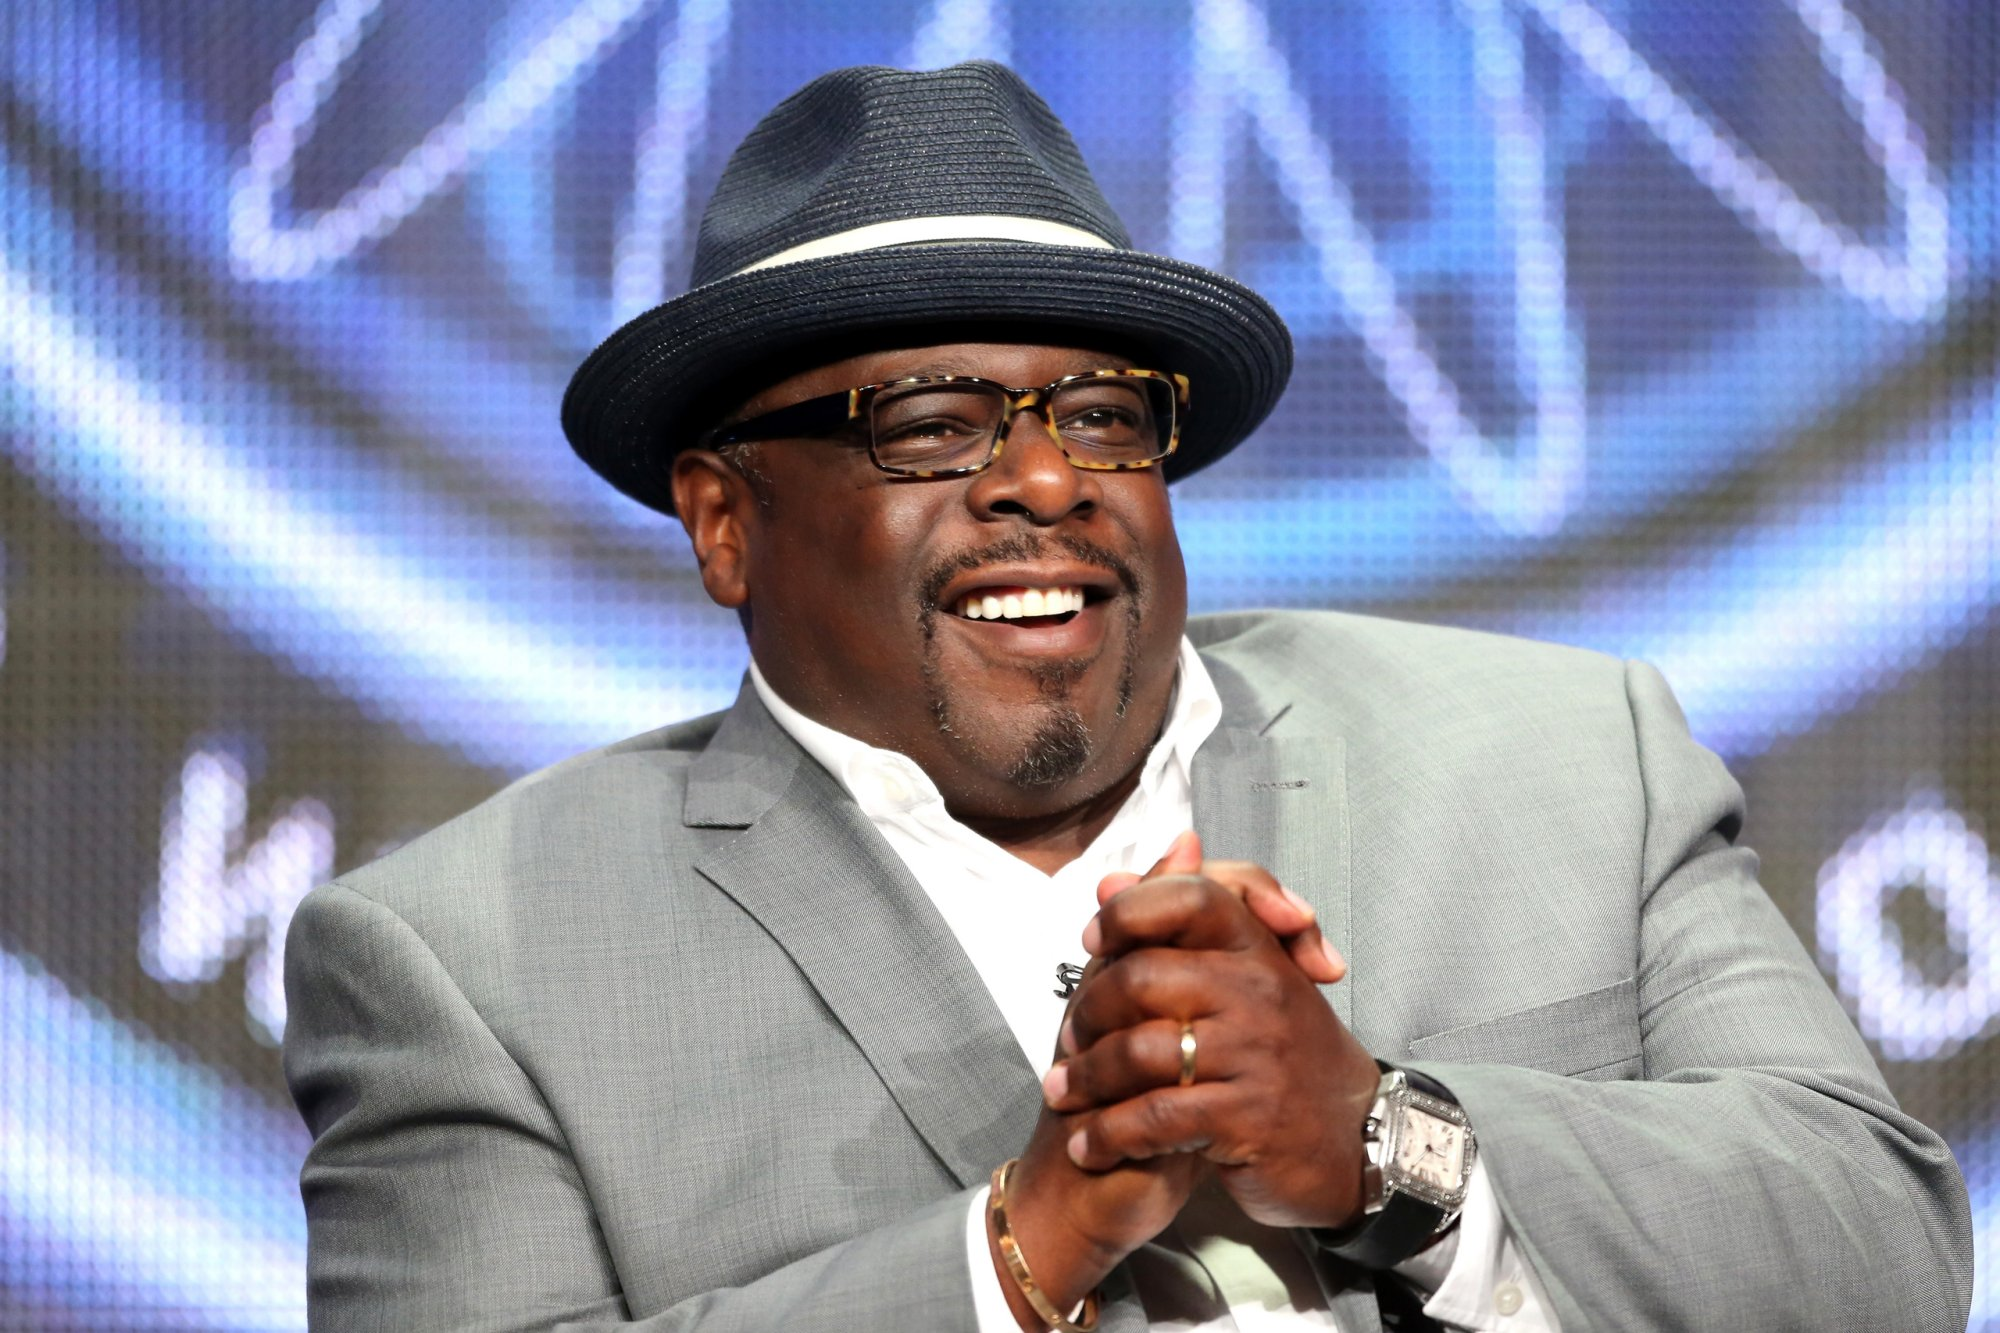 Cedric The Entertainer Background